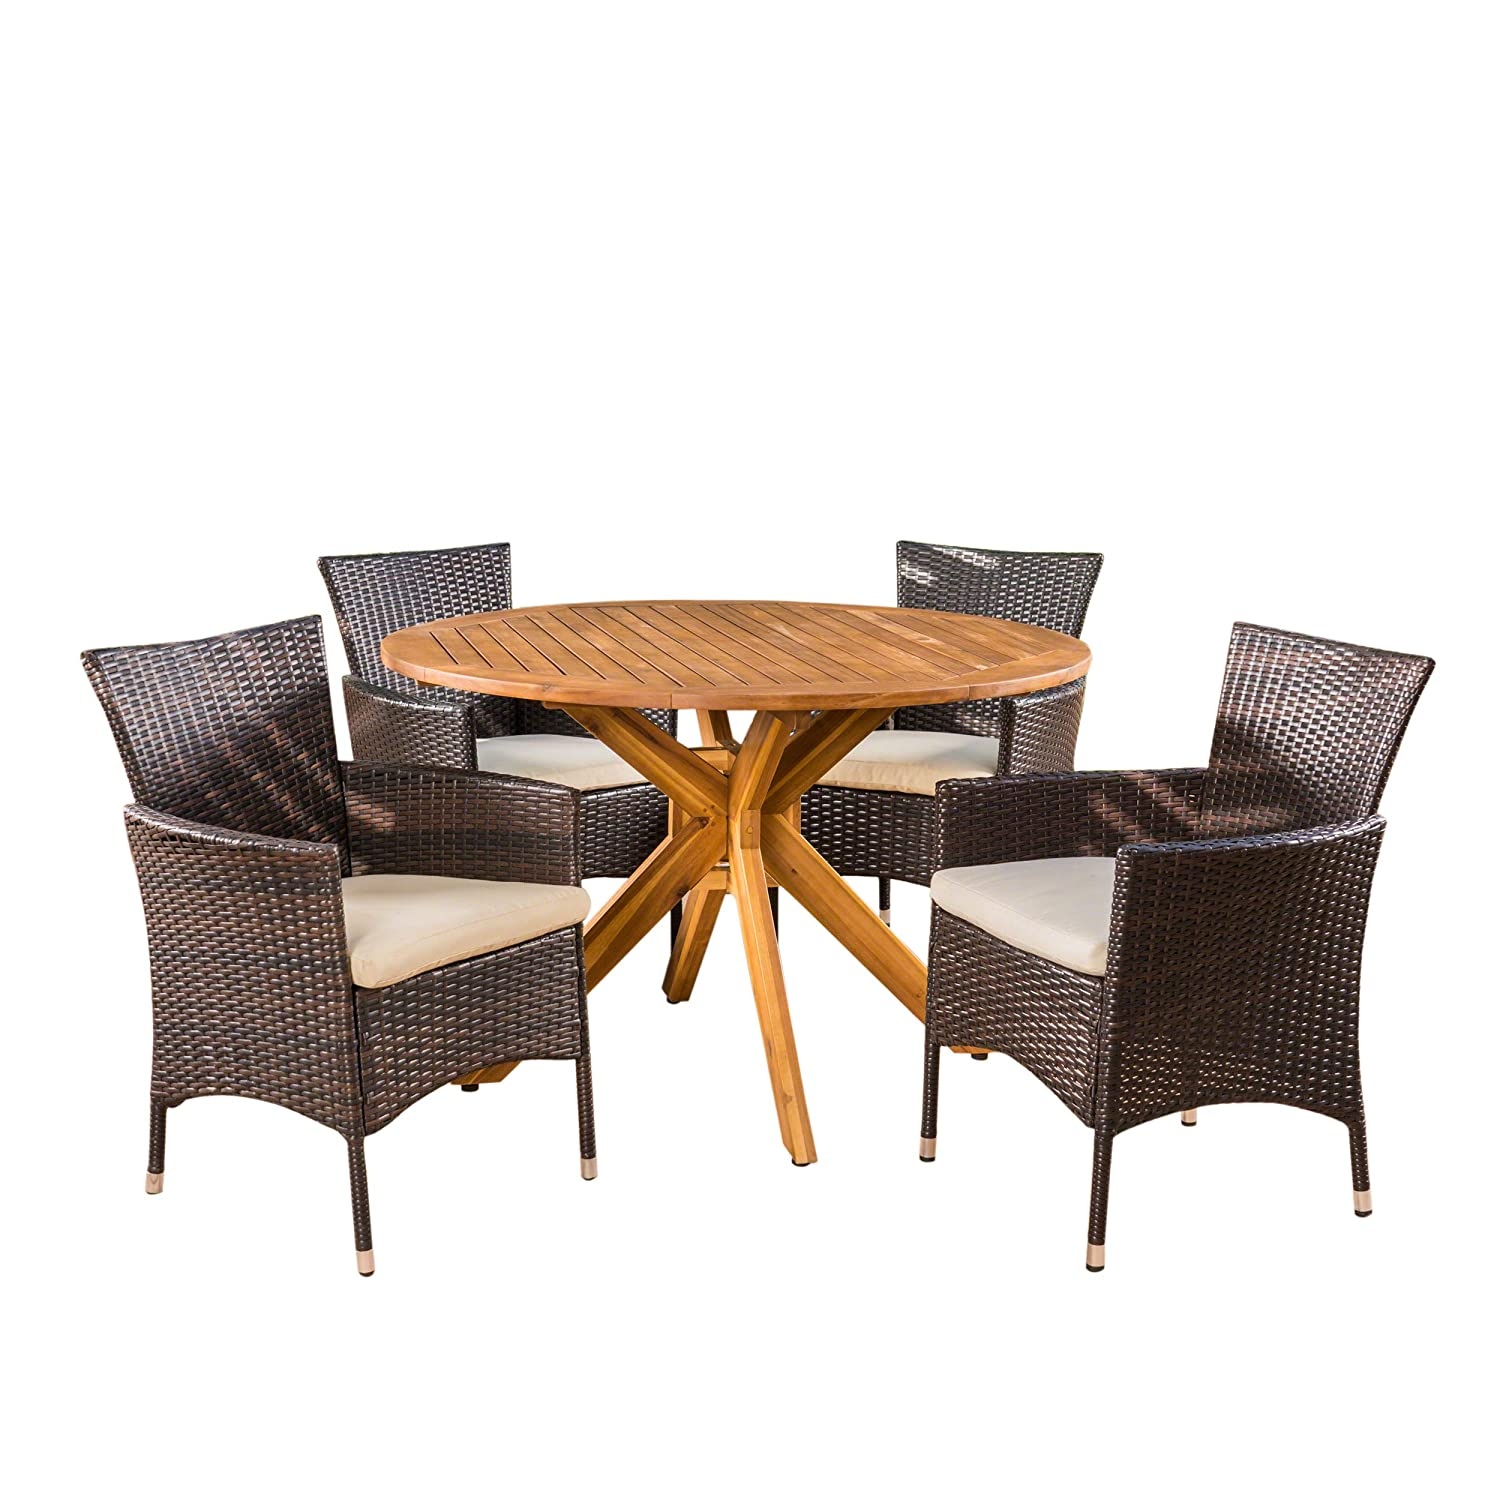 Great deal furniture jacob outdoor 5 piece multibrown wicker dining set with teak finish circular acacia wood dining table and beige water resistant